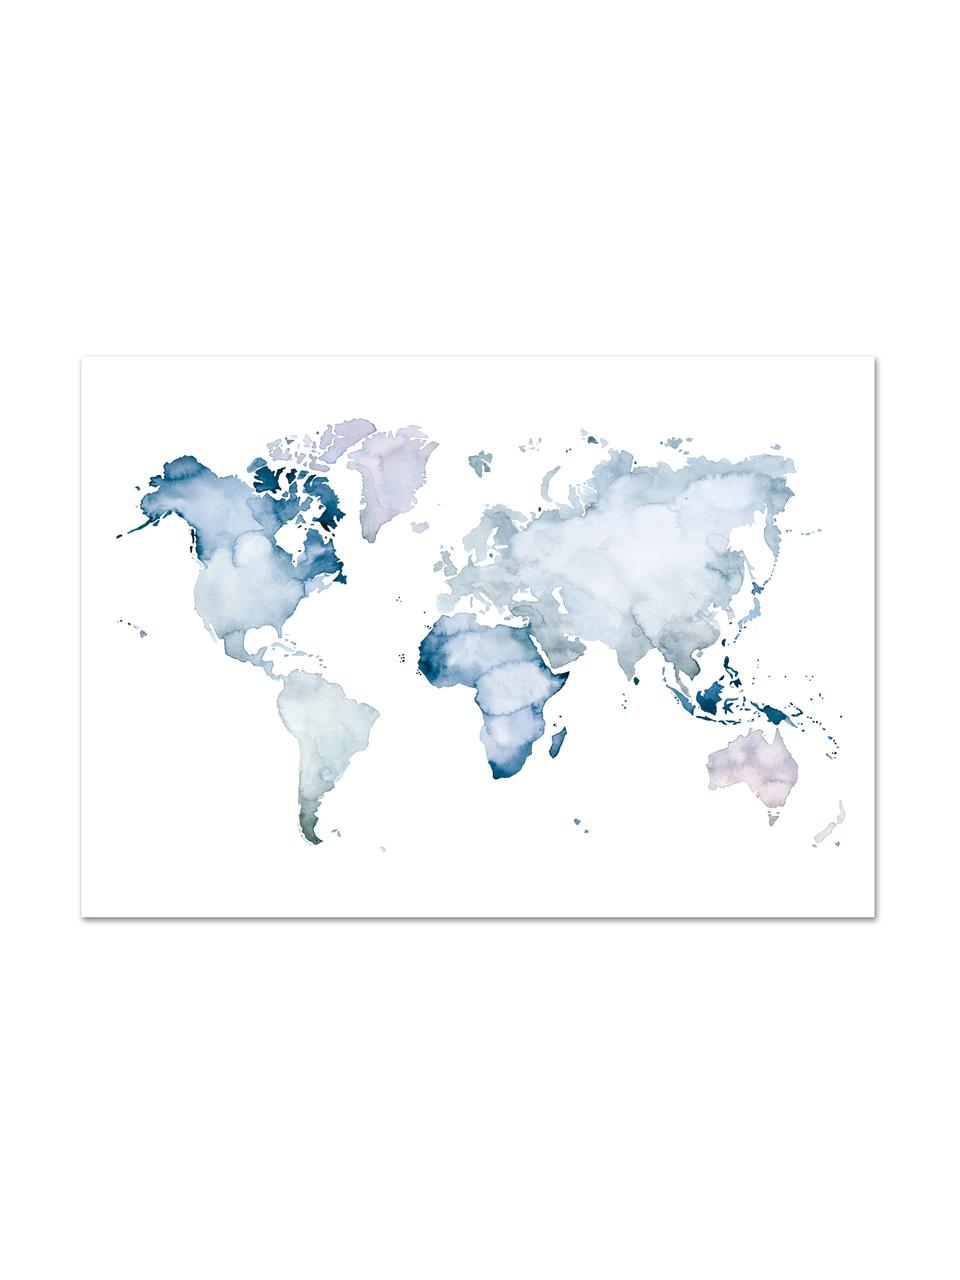 Póster World Map, Impresión digital sobre papel, 200 g/m², Azul, blanco, An 30 x Al 21 cm